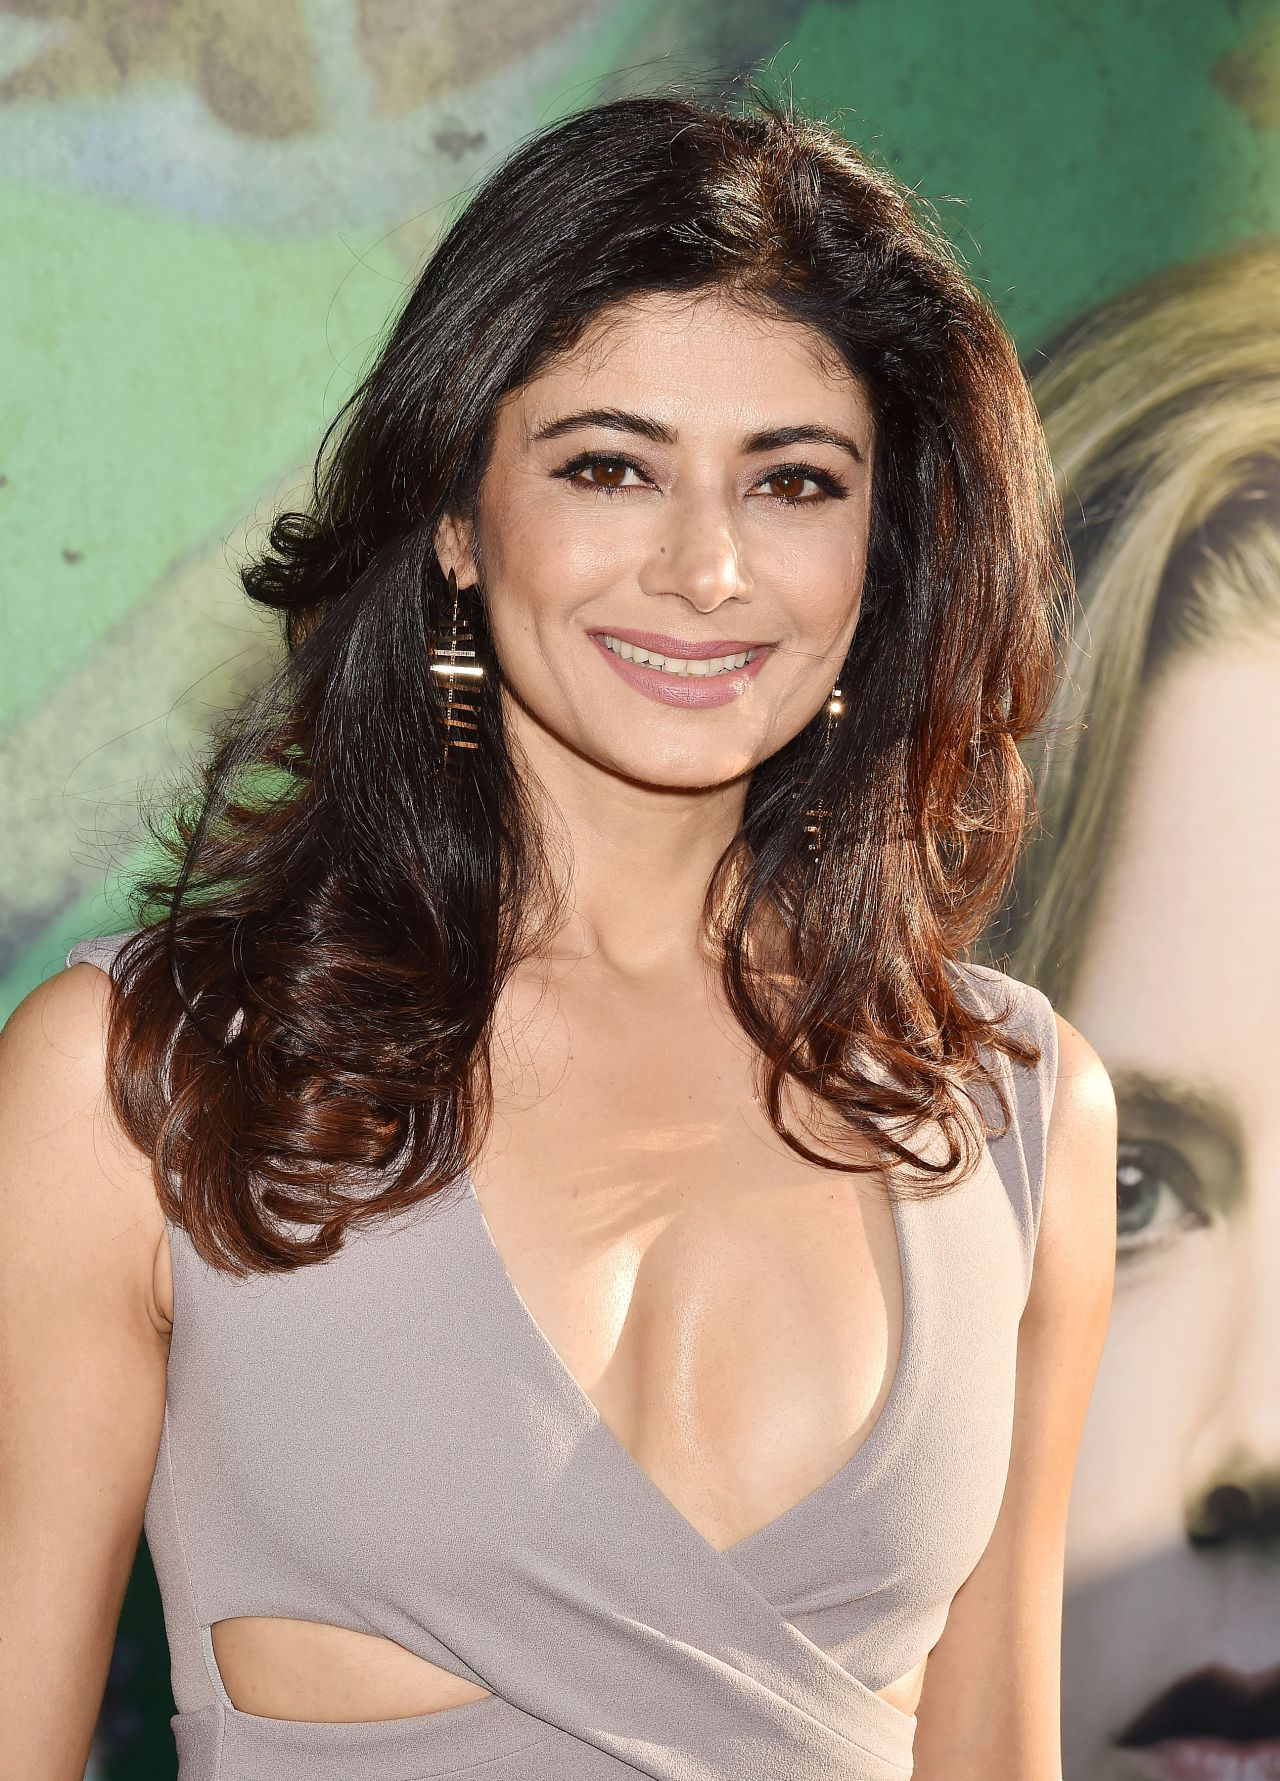 Nudes Pooja Batra 63 Photos Tits, Youtube-6316